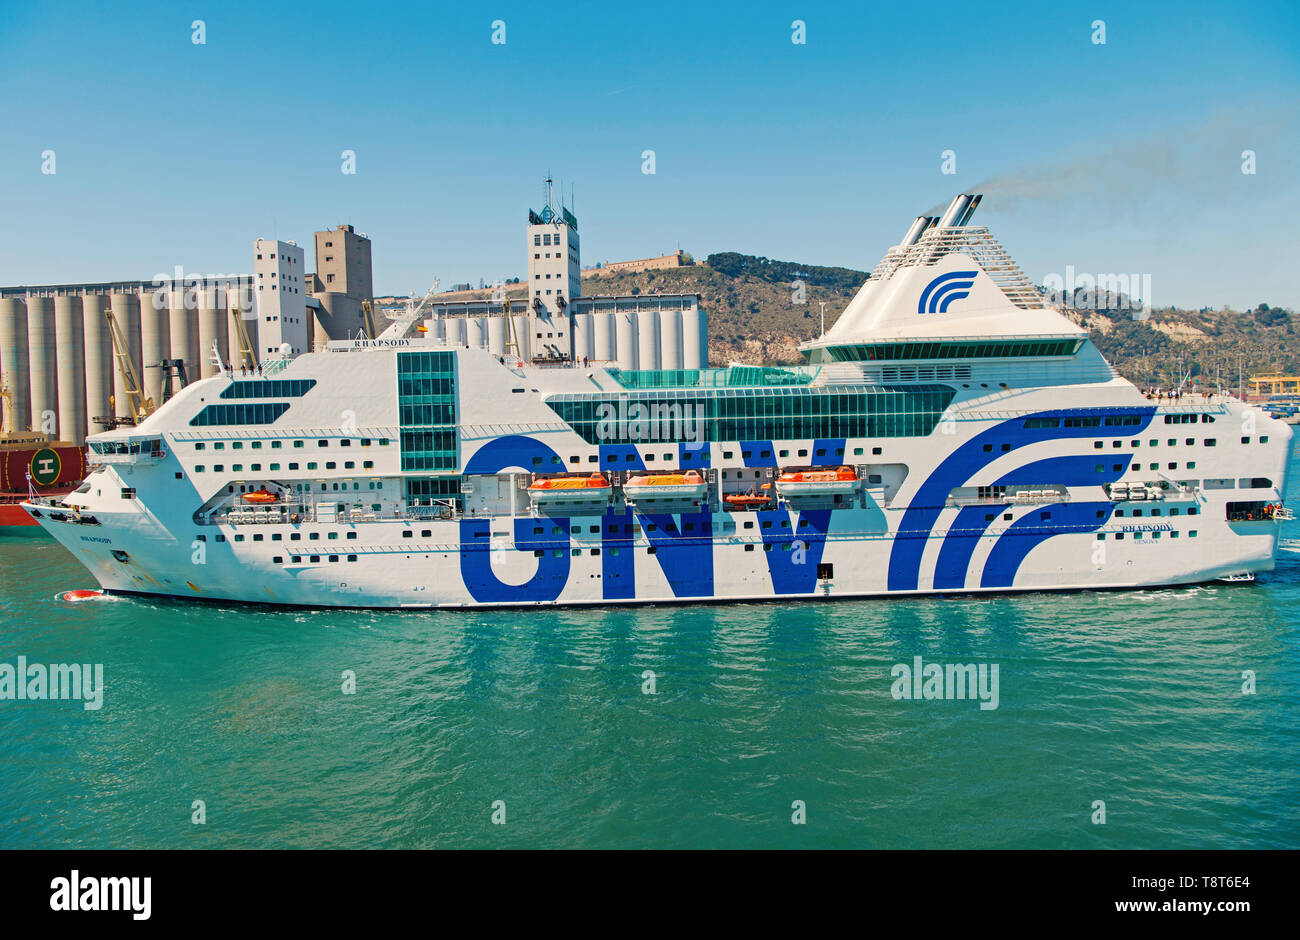 Barcelona, Spain - March 30, 2016: passenger vessel GNV Rhapsody Genova in sea port. Cruise destination and vessel trip. Summer vacation and wanderlust. vessel trip discovery. Travel by sea vessel. - Stock Image